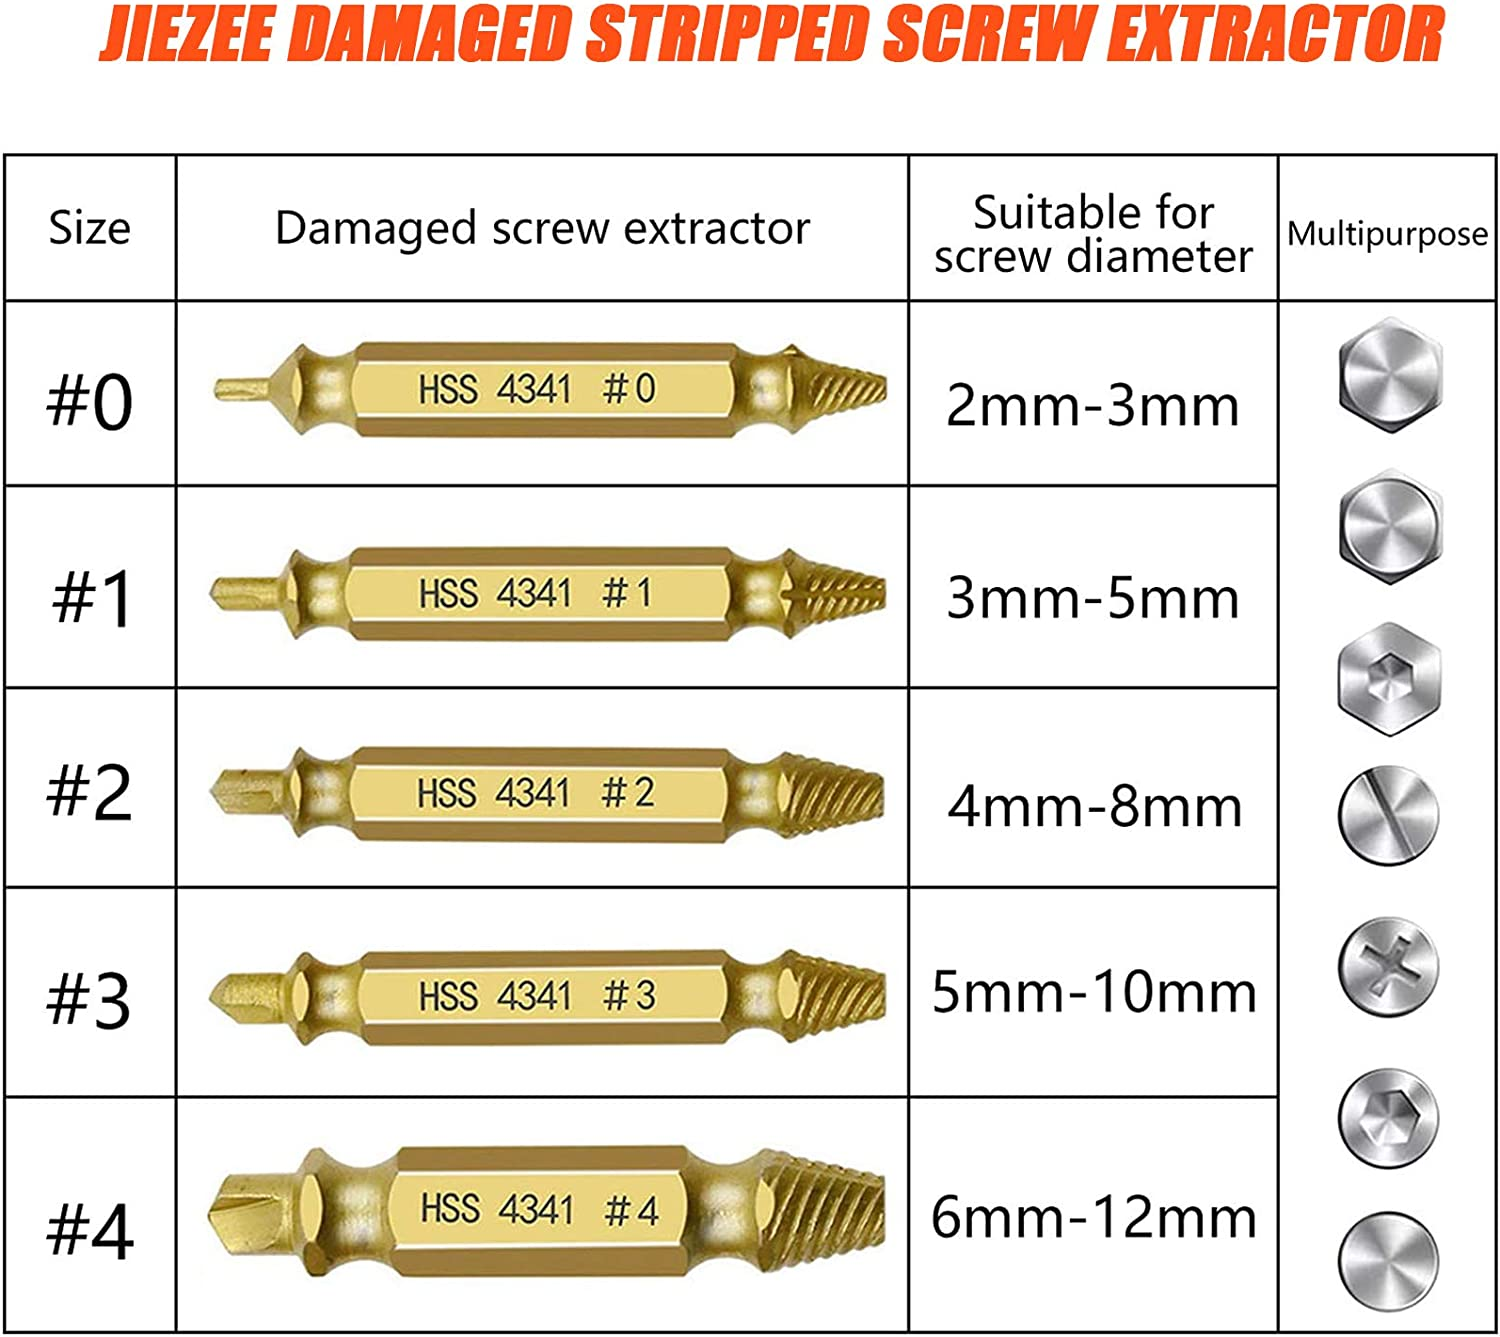 Damaged Stripped Screw Extractor Kit for Broken Screw Extractor Set High Speed Steel H.S.S 4341 Socket Adapter Screw Removal Set 5 PCS